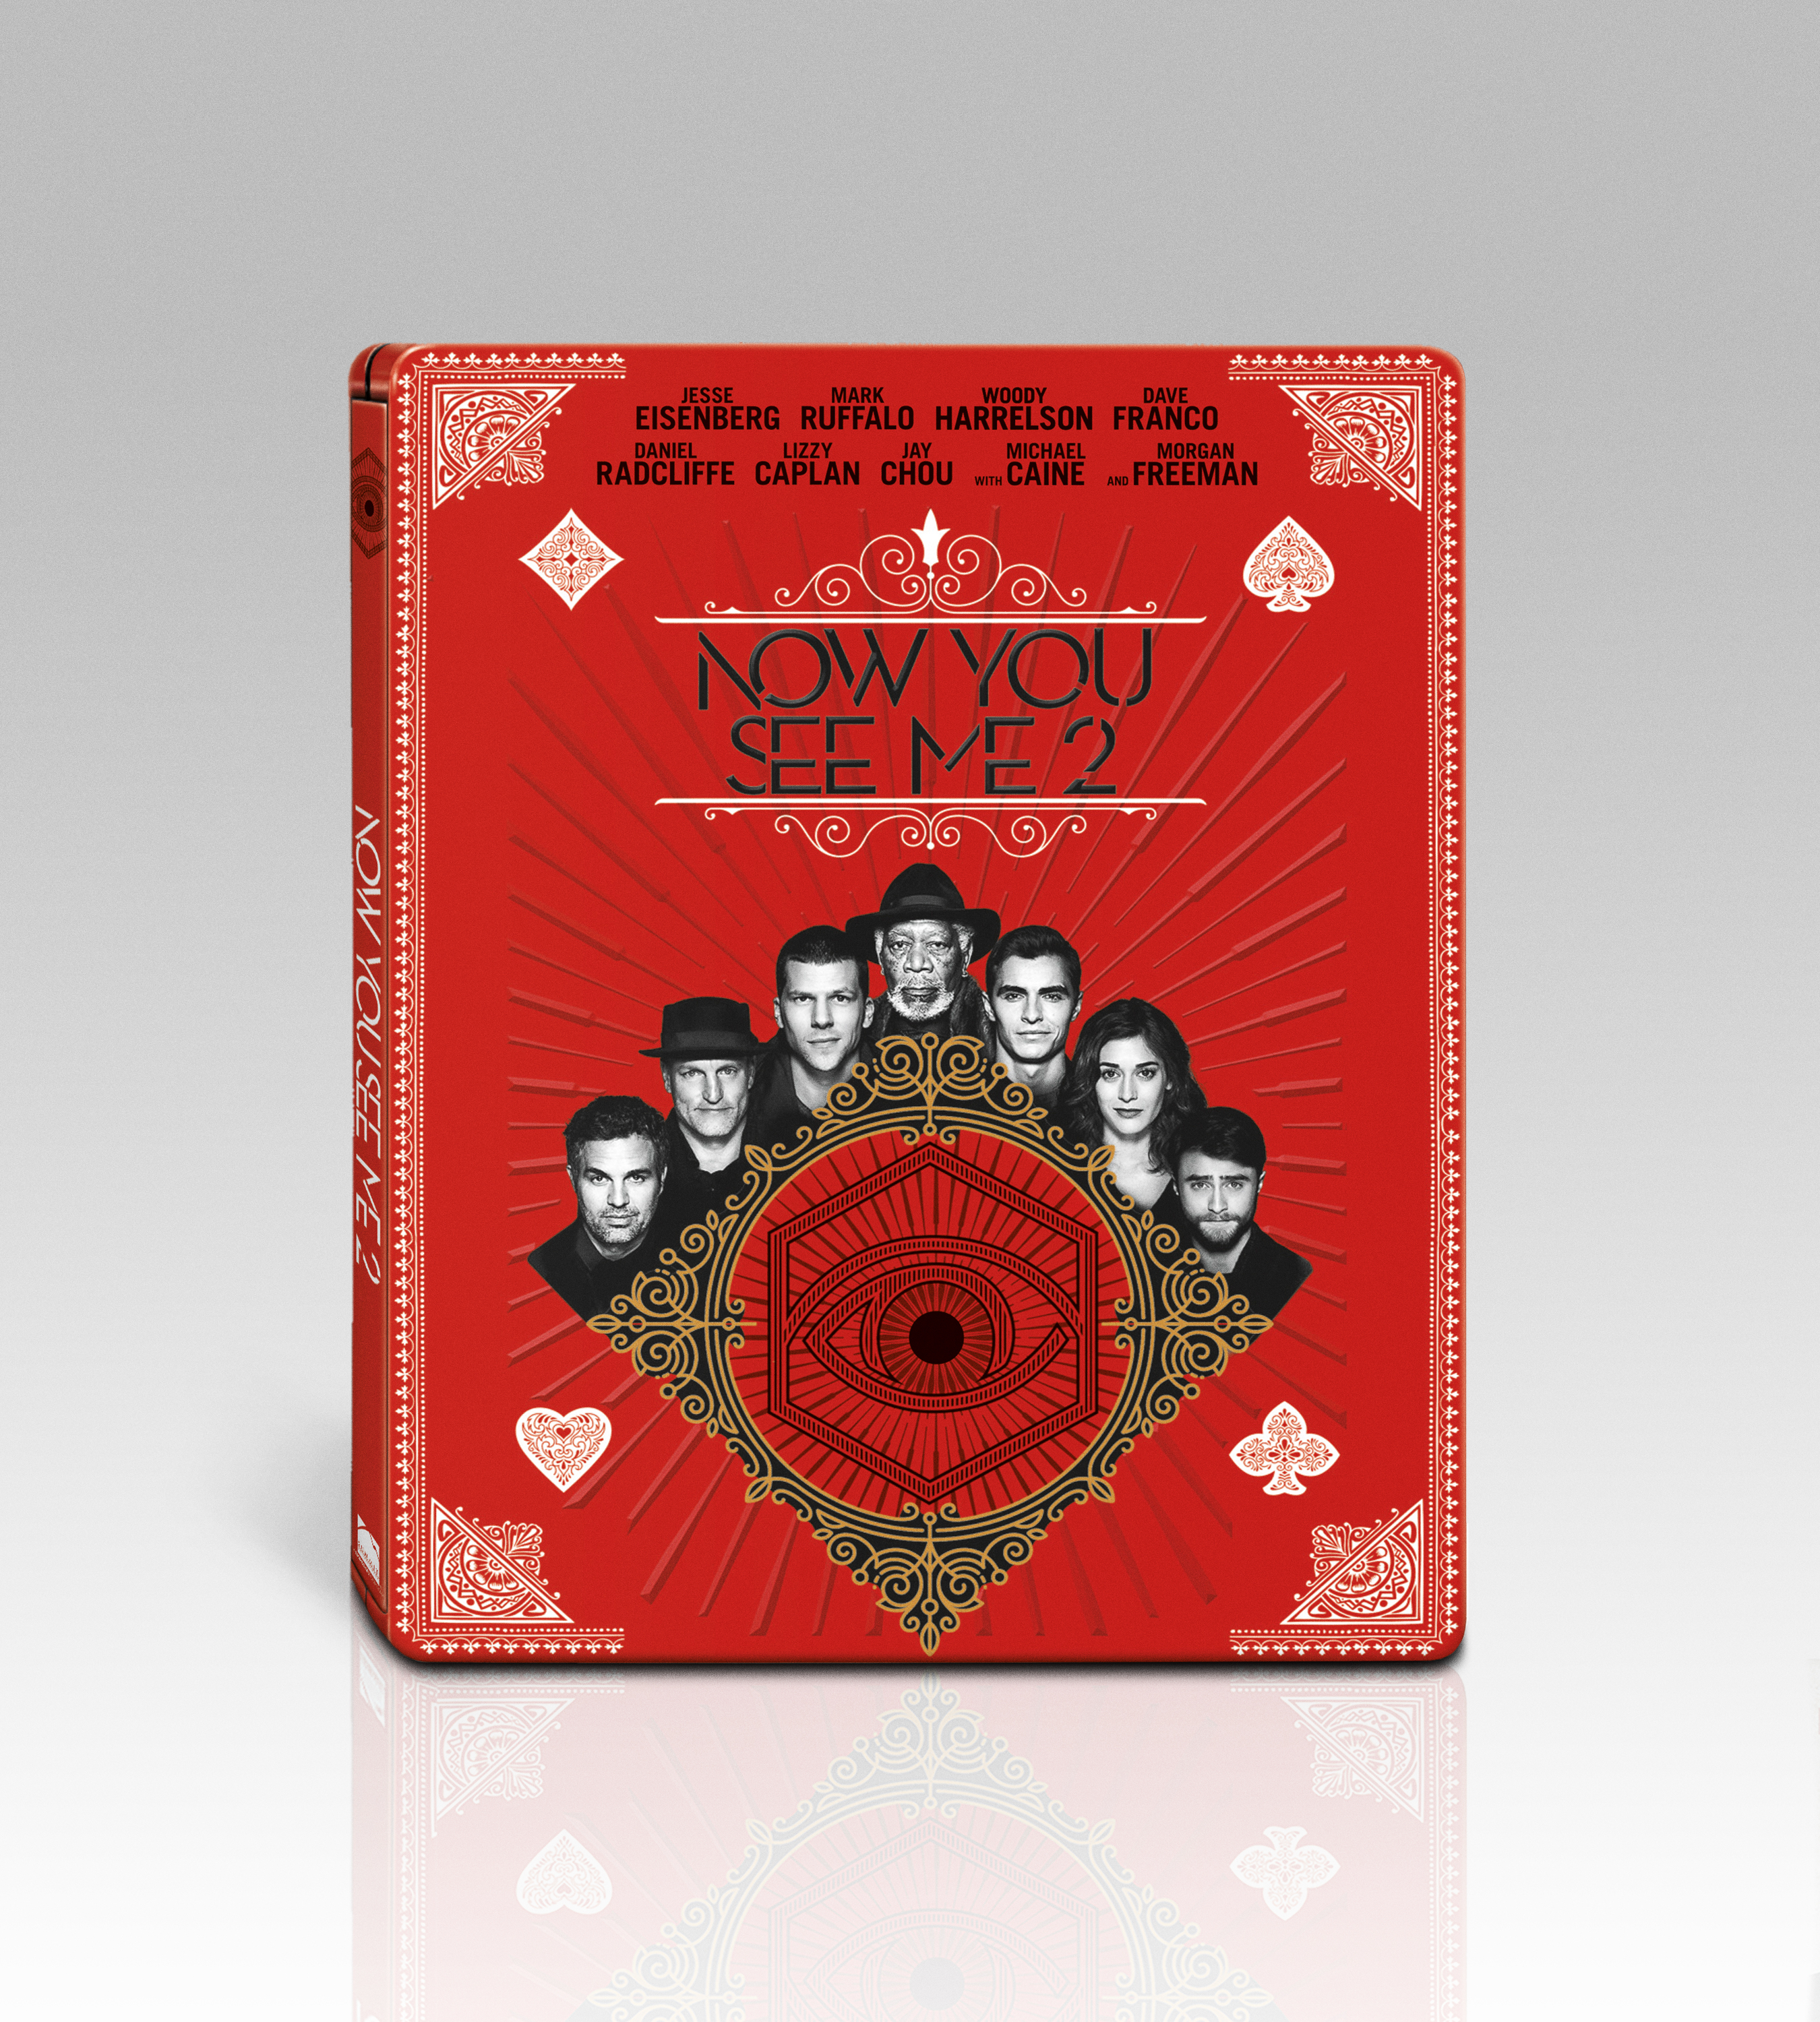 Thumbnail for Now You See Me 2 Packaging Campaign